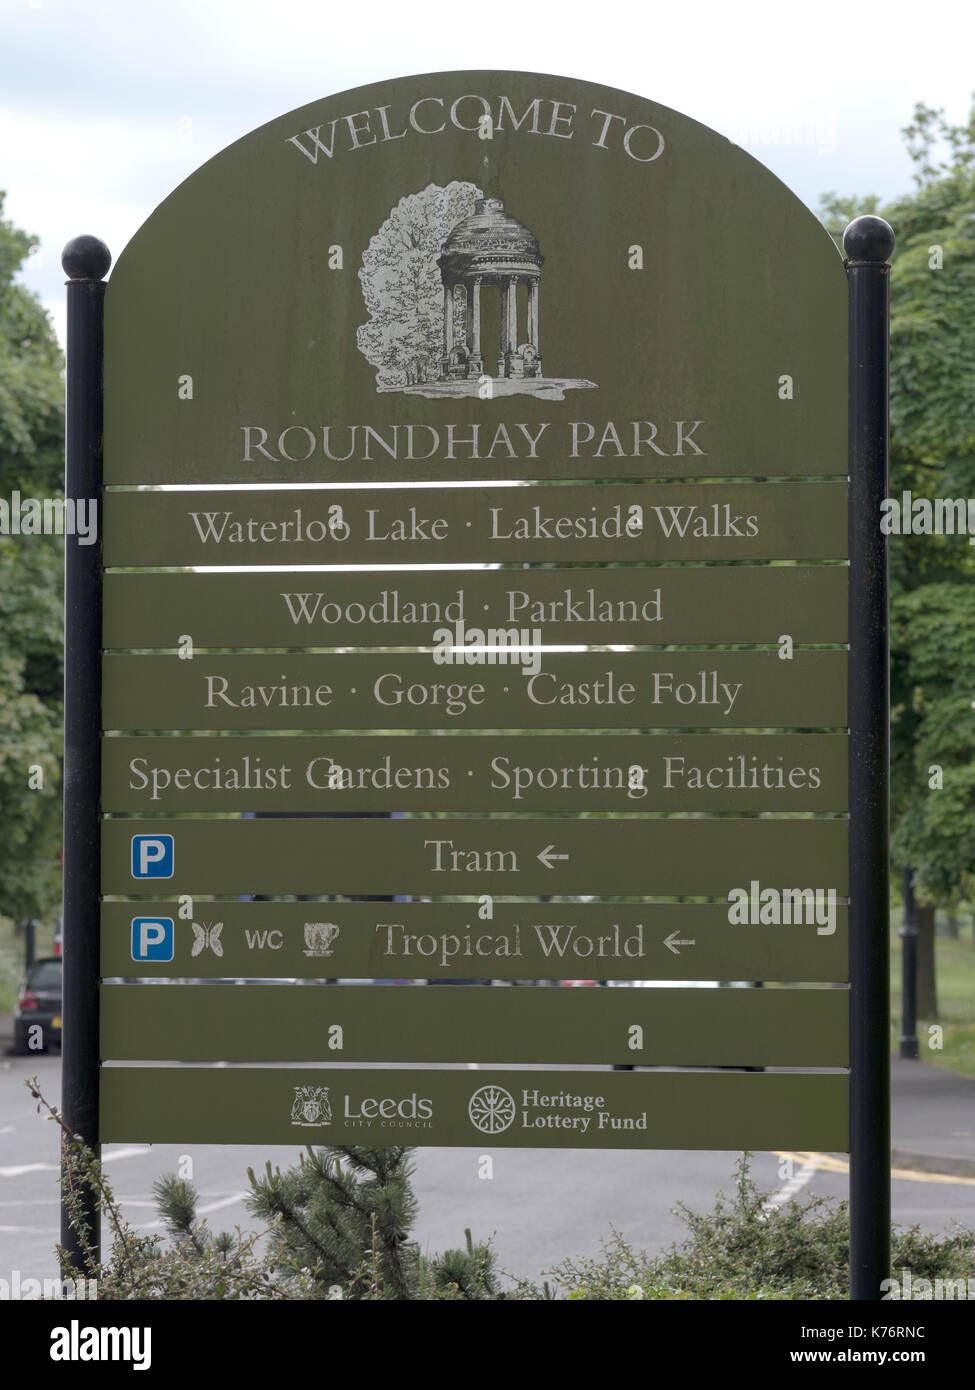 Welcome to sign at Roundhay Park, Leeds, Yorkshire, England, UK Stock Photo